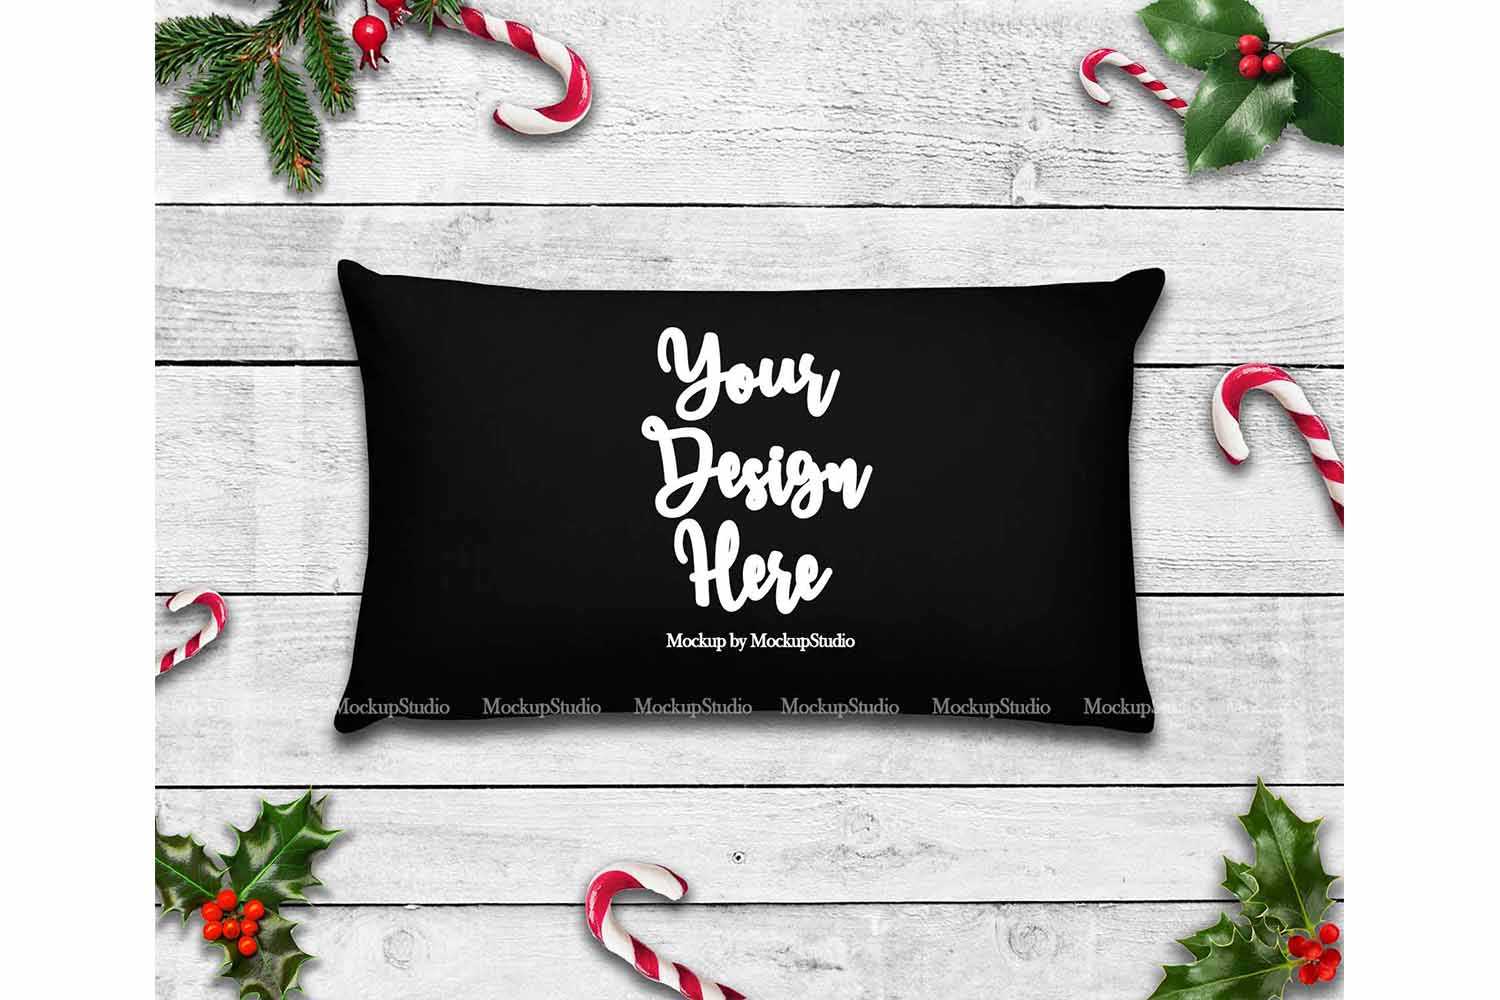 Throw Pillow Mockup Bundle 6 Images, Pillow Flat Lay Display example image 4